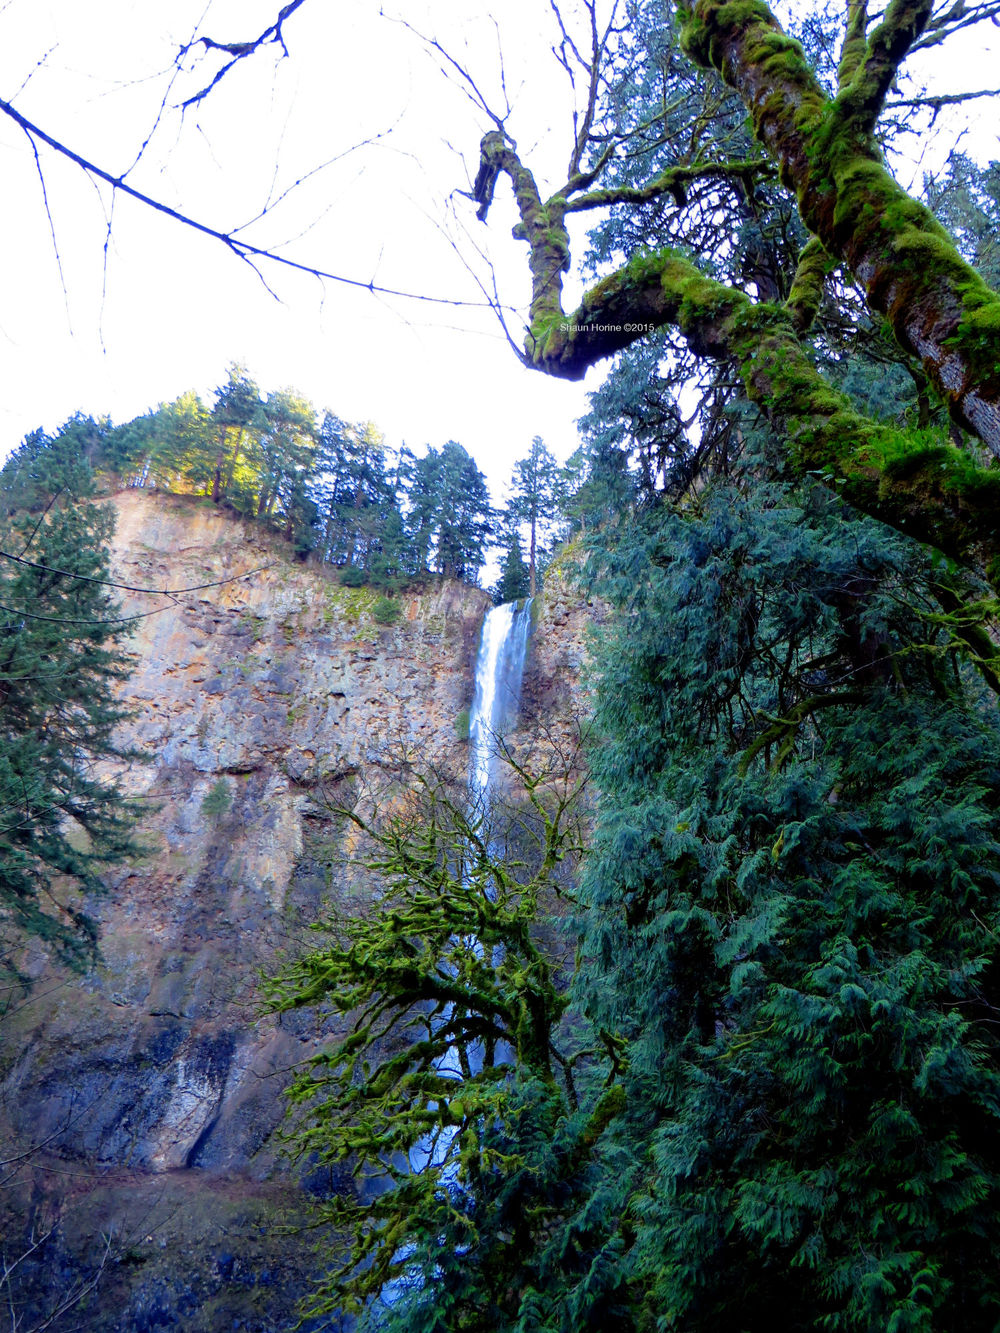 Heading up the trail with one last look back at Multnomah Falls. March 1st, 2015